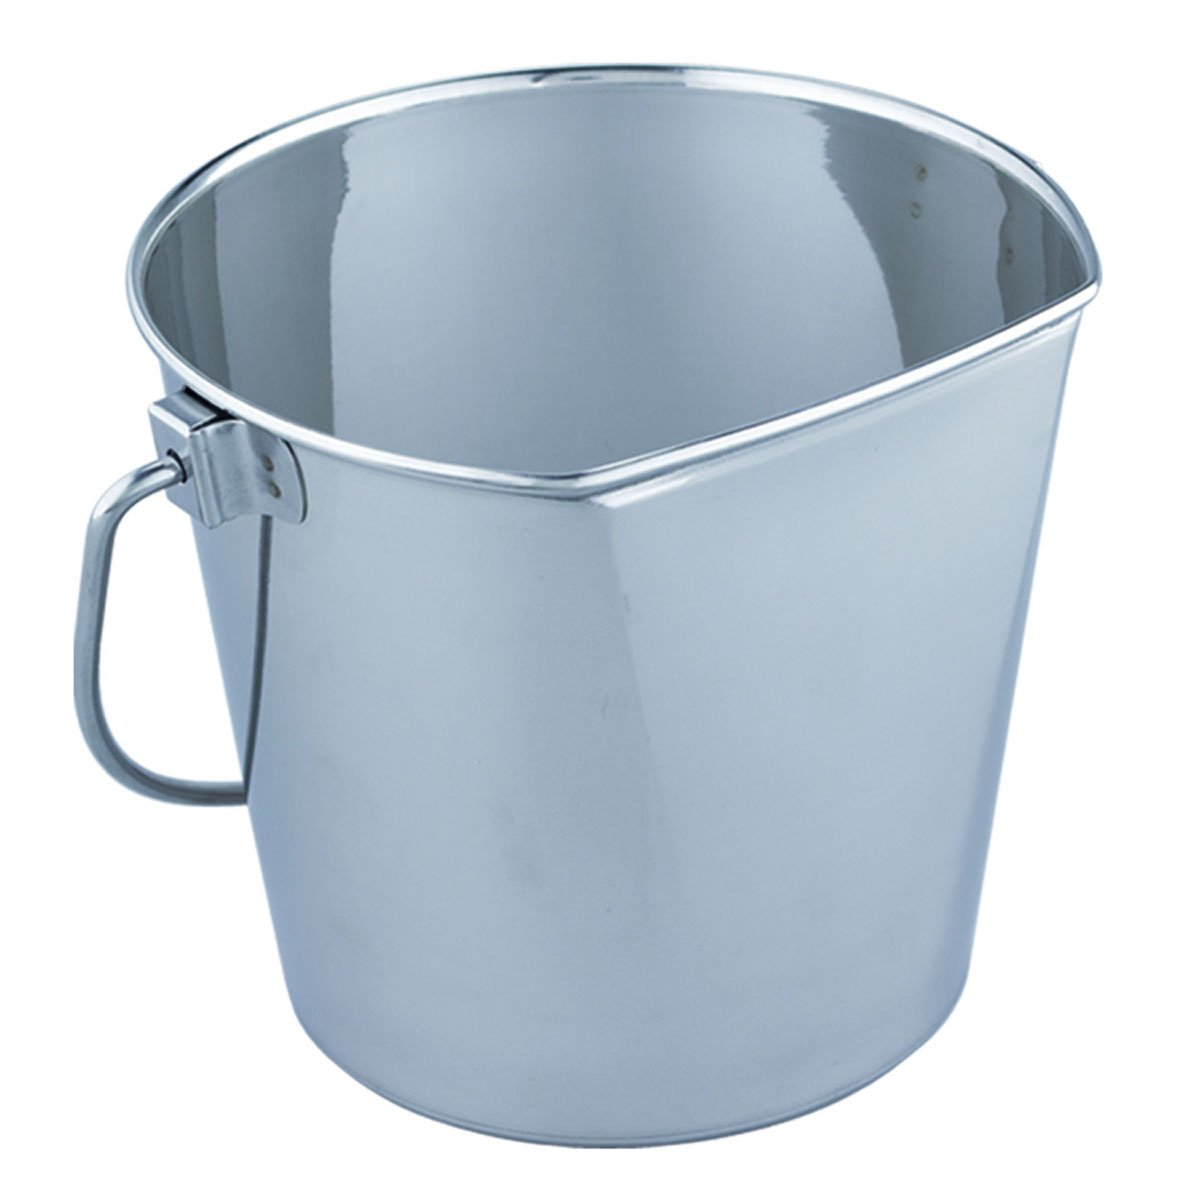 QT Dog Flat Sided Stainless Steel Bucket, 2 Quart by QT Dog